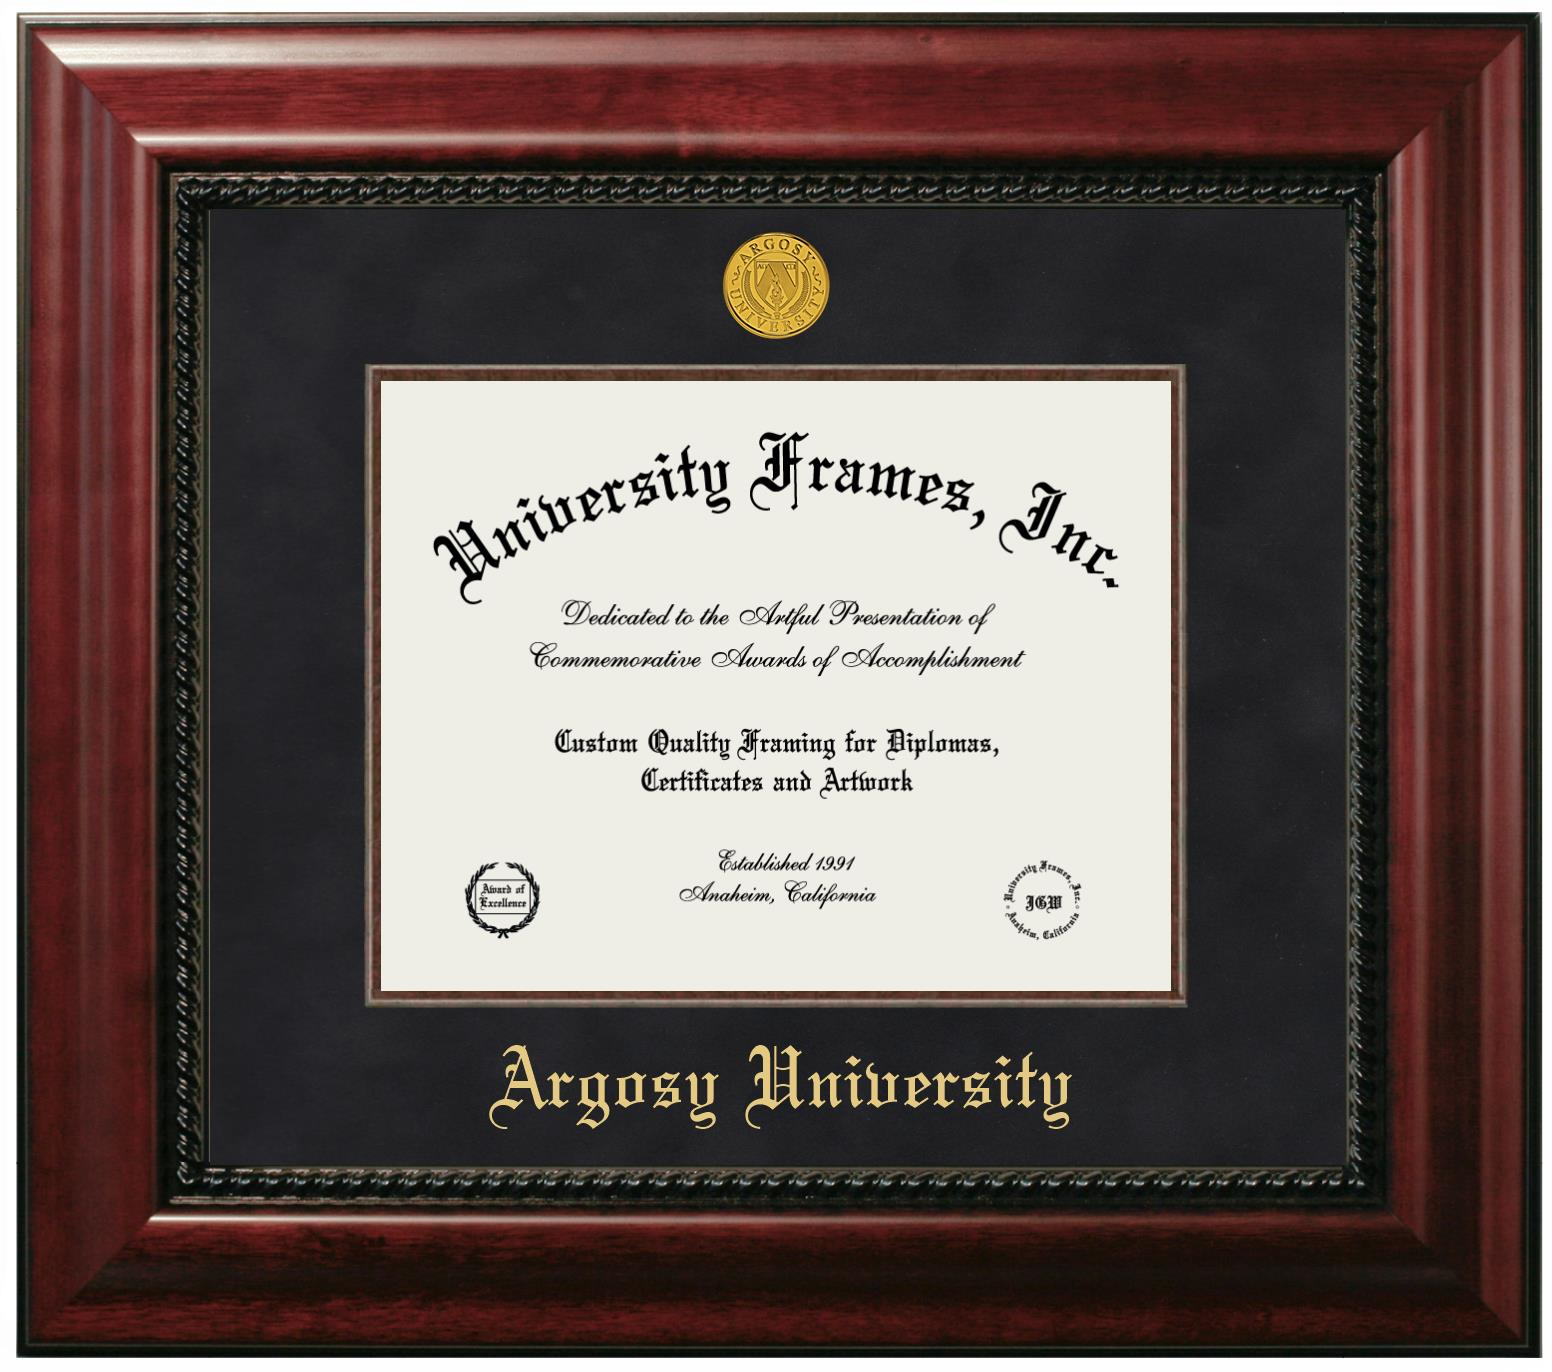 Argosy University Diploma Frame In Executive With Gold Fillet With Black Suede Mat